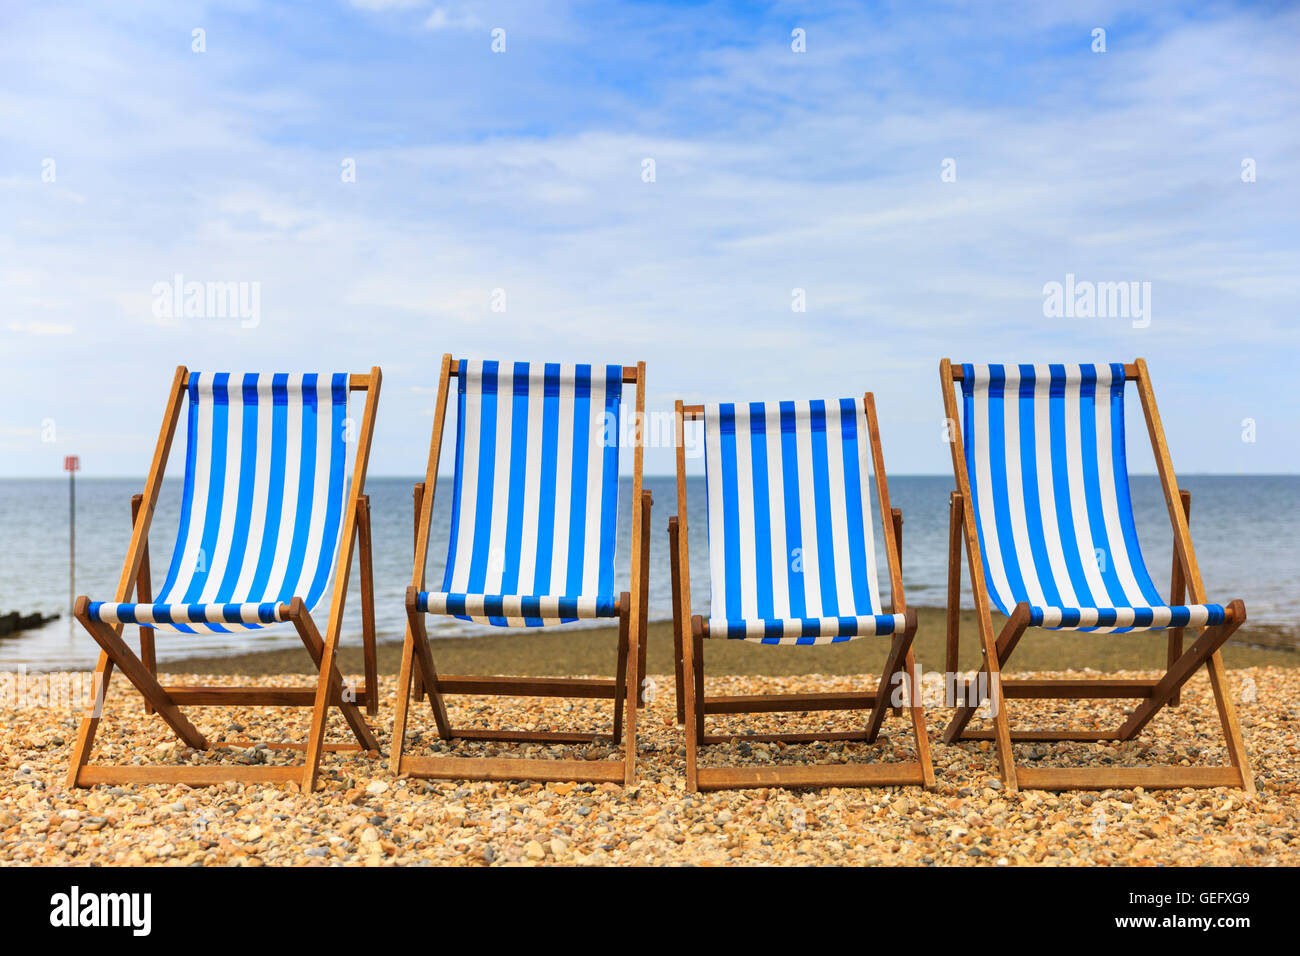 Row of four empty deck chairs on a pebble beach on the sunny seaside in Kent UK  sc 1 st  Alamy & Row of four empty deck chairs on a pebble beach on the sunny seaside ...